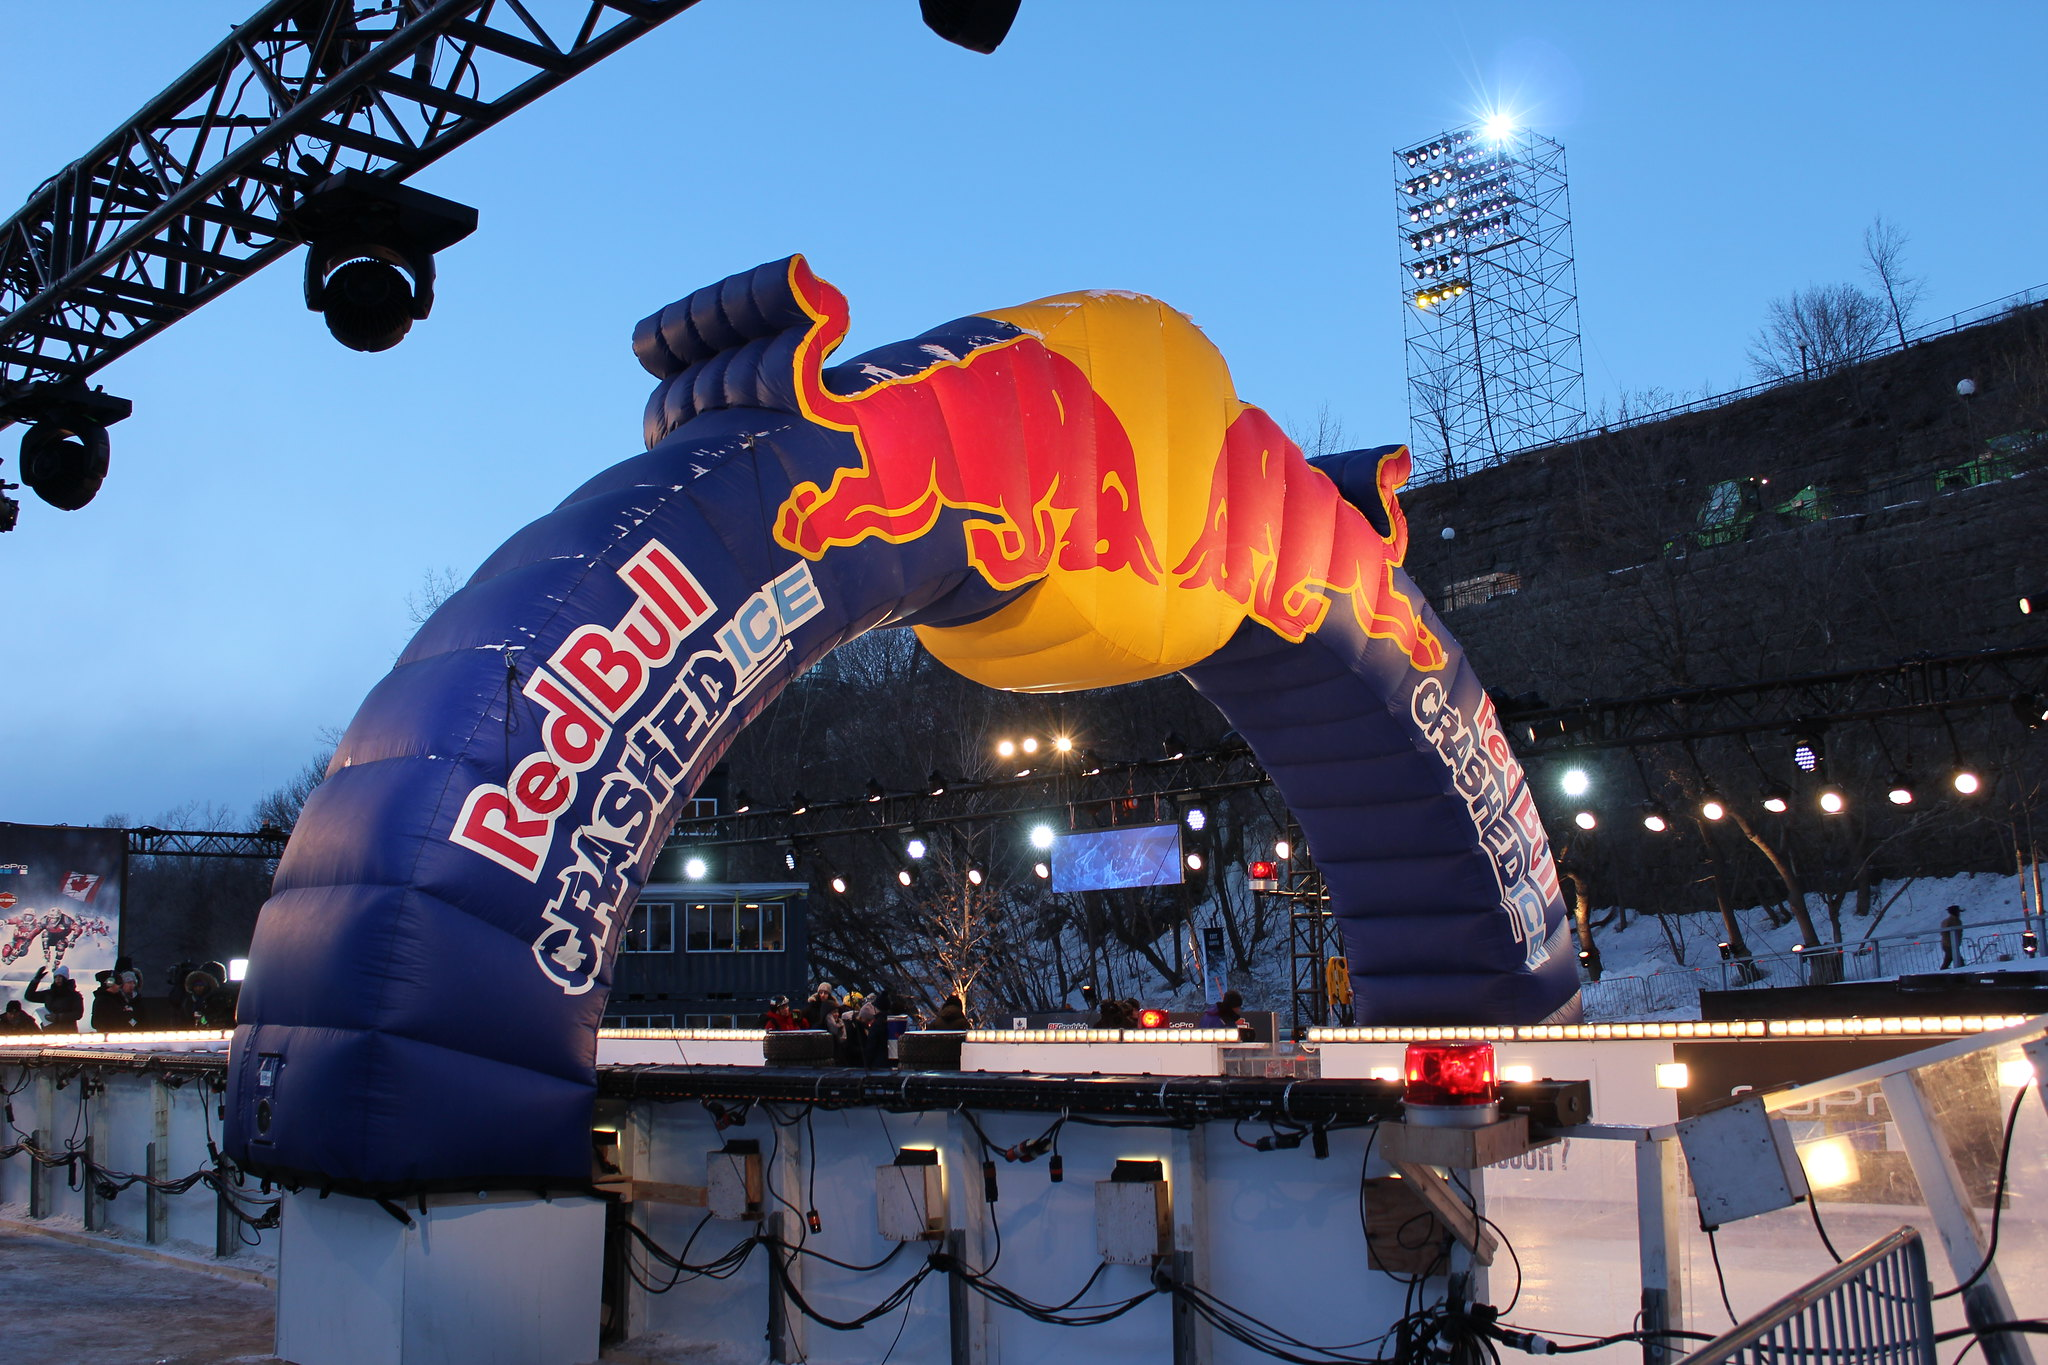 Final Red Bull Crashed Ice